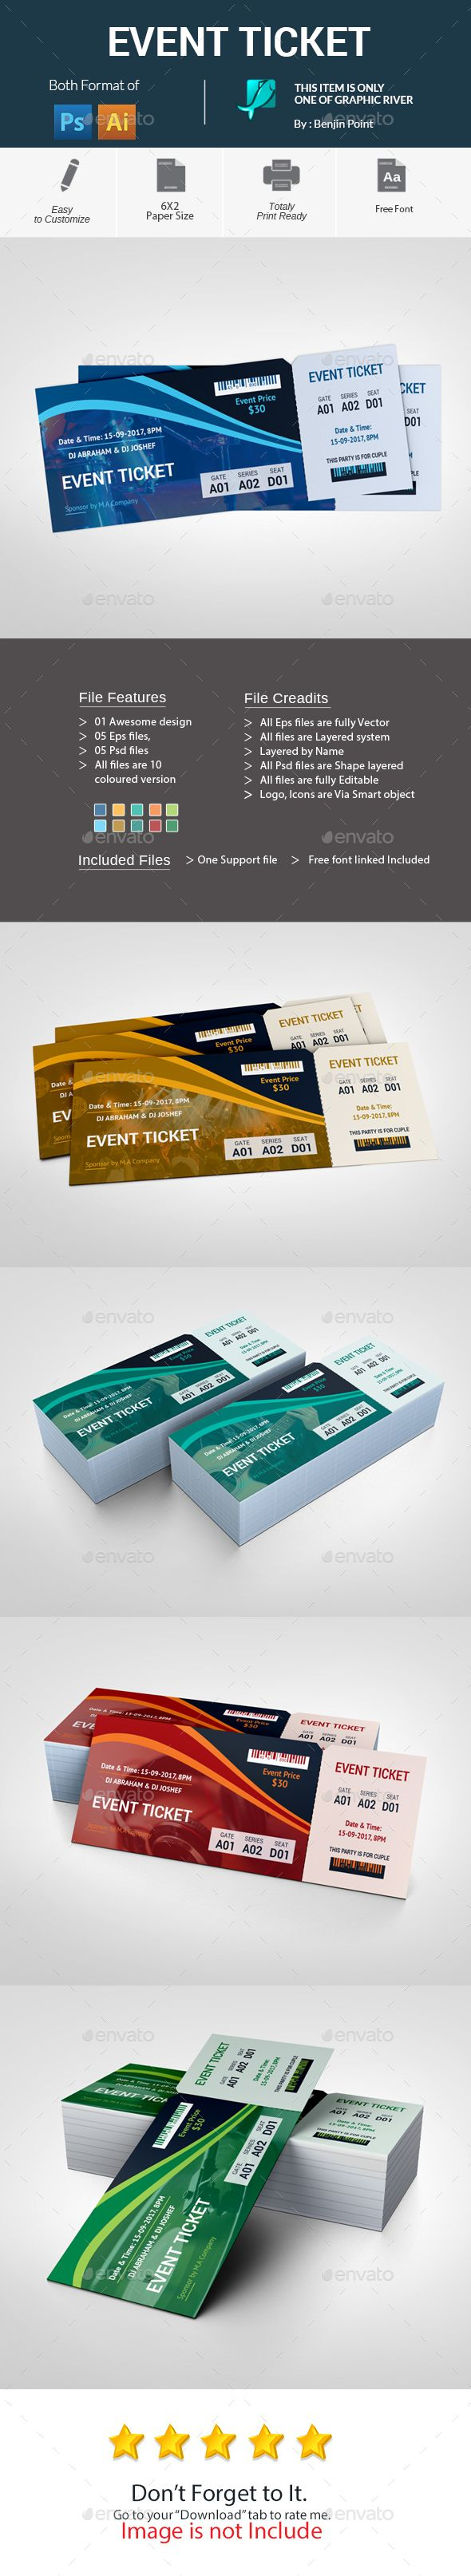 best 25 event tickets ideas on pinterest ticket design ticket and event ticket template. Black Bedroom Furniture Sets. Home Design Ideas